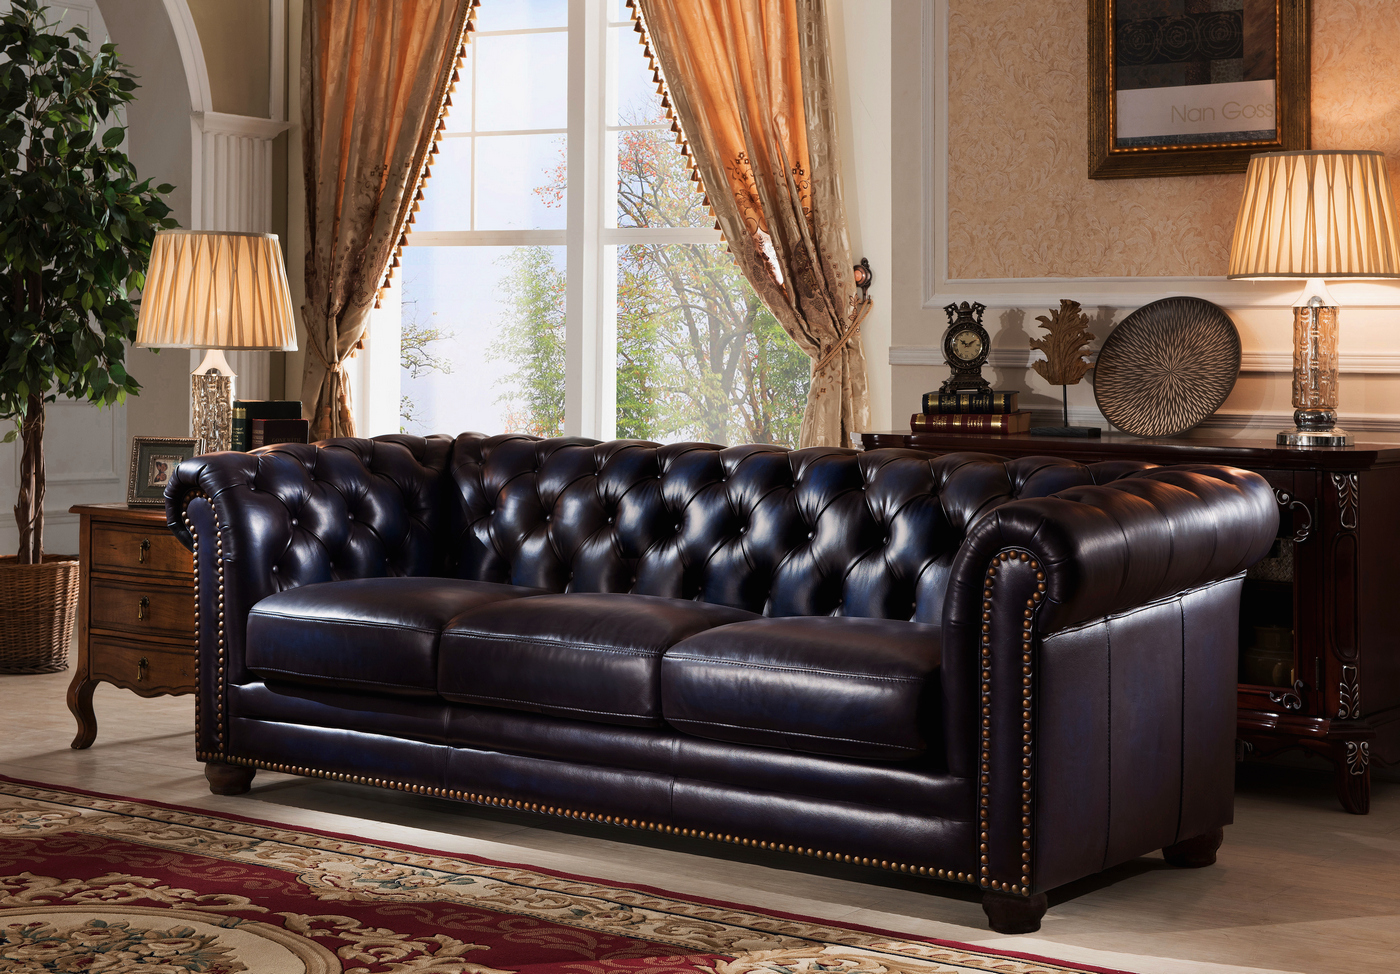 navy leather chesterfield sofa design set dynasty 100 genuine 3 pc in